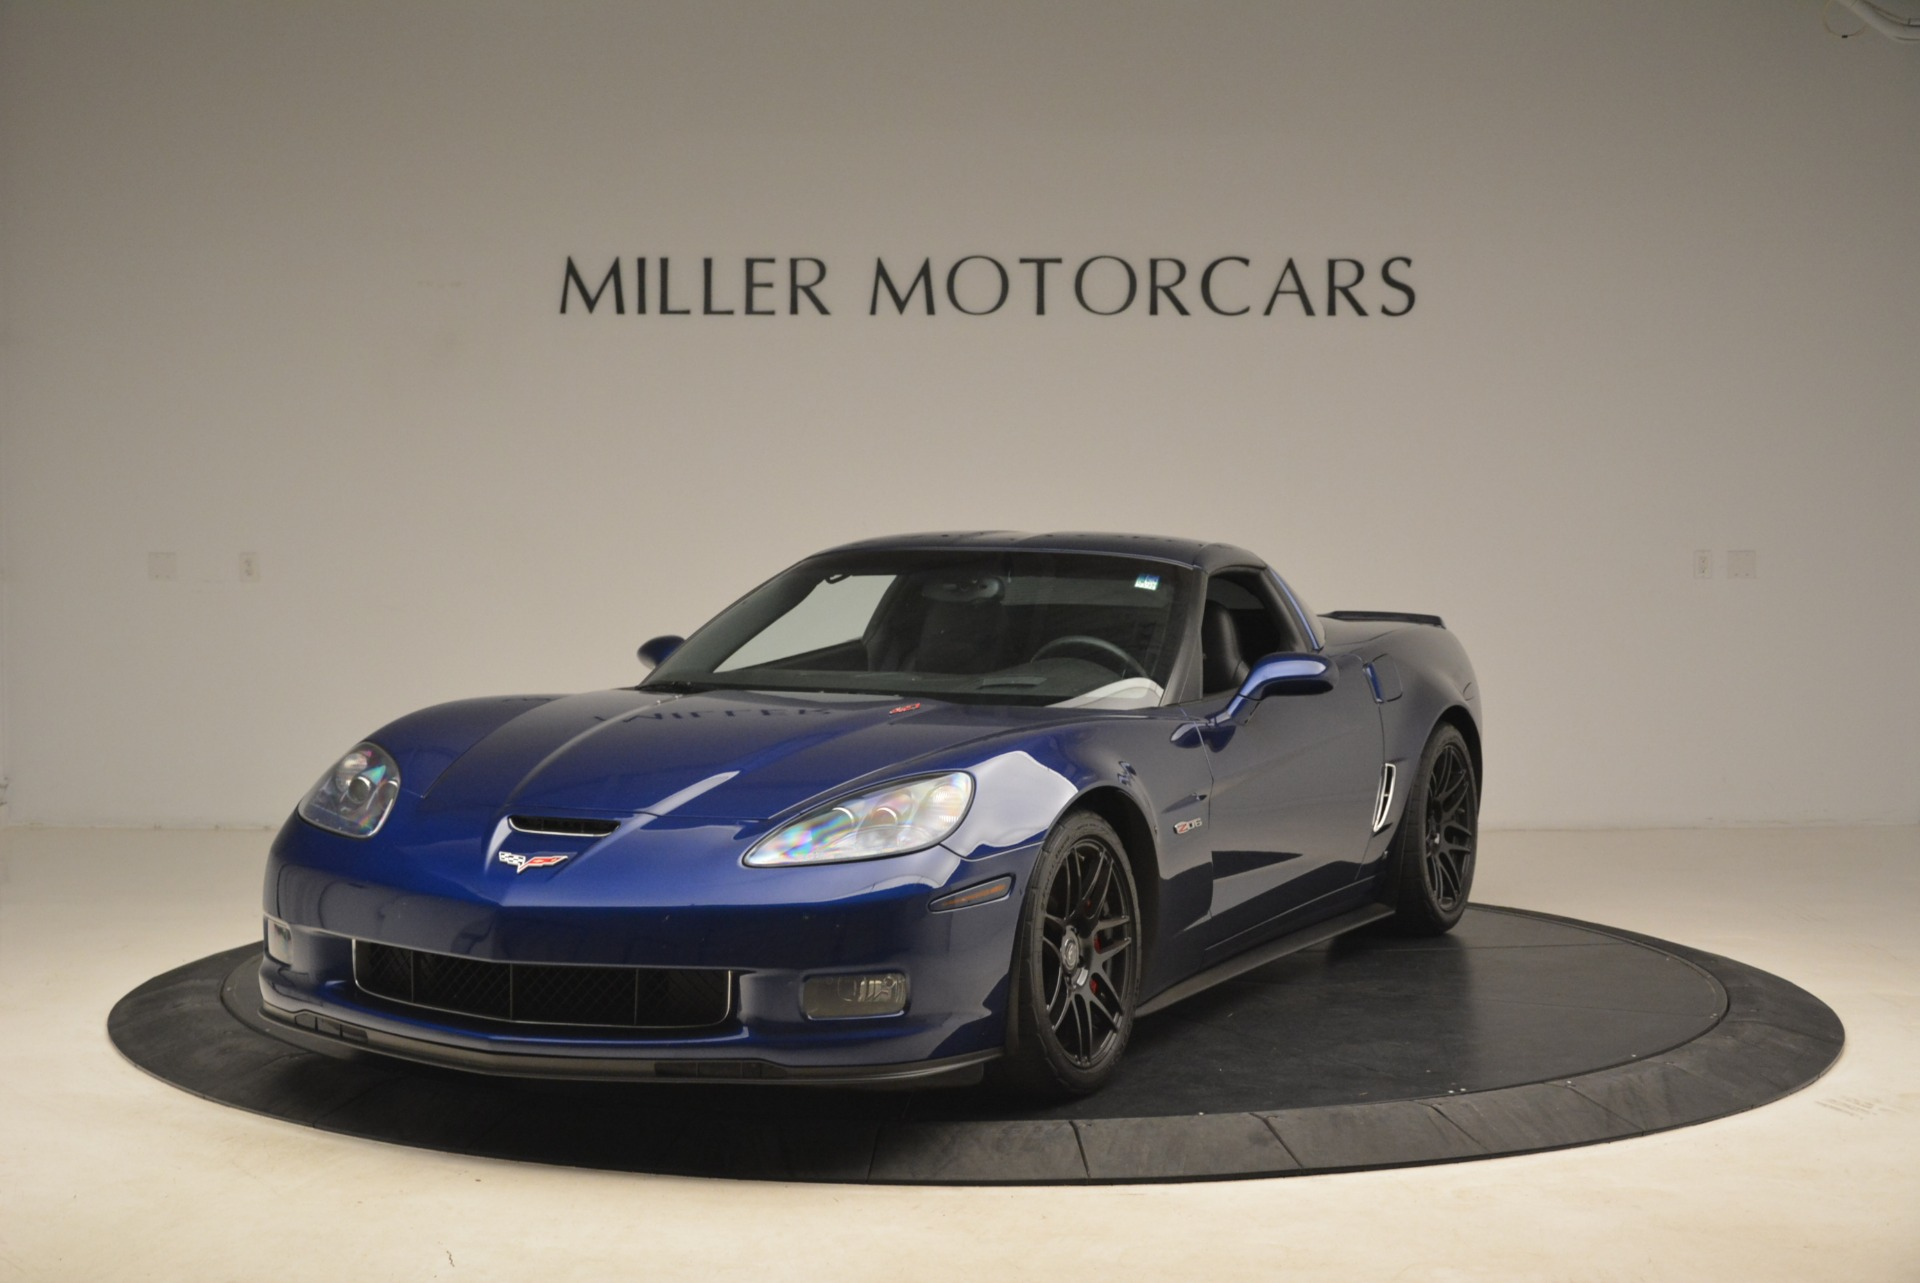 Used 2006 Chevrolet Corvette Z06 for sale Sold at Pagani of Greenwich in Greenwich CT 06830 1